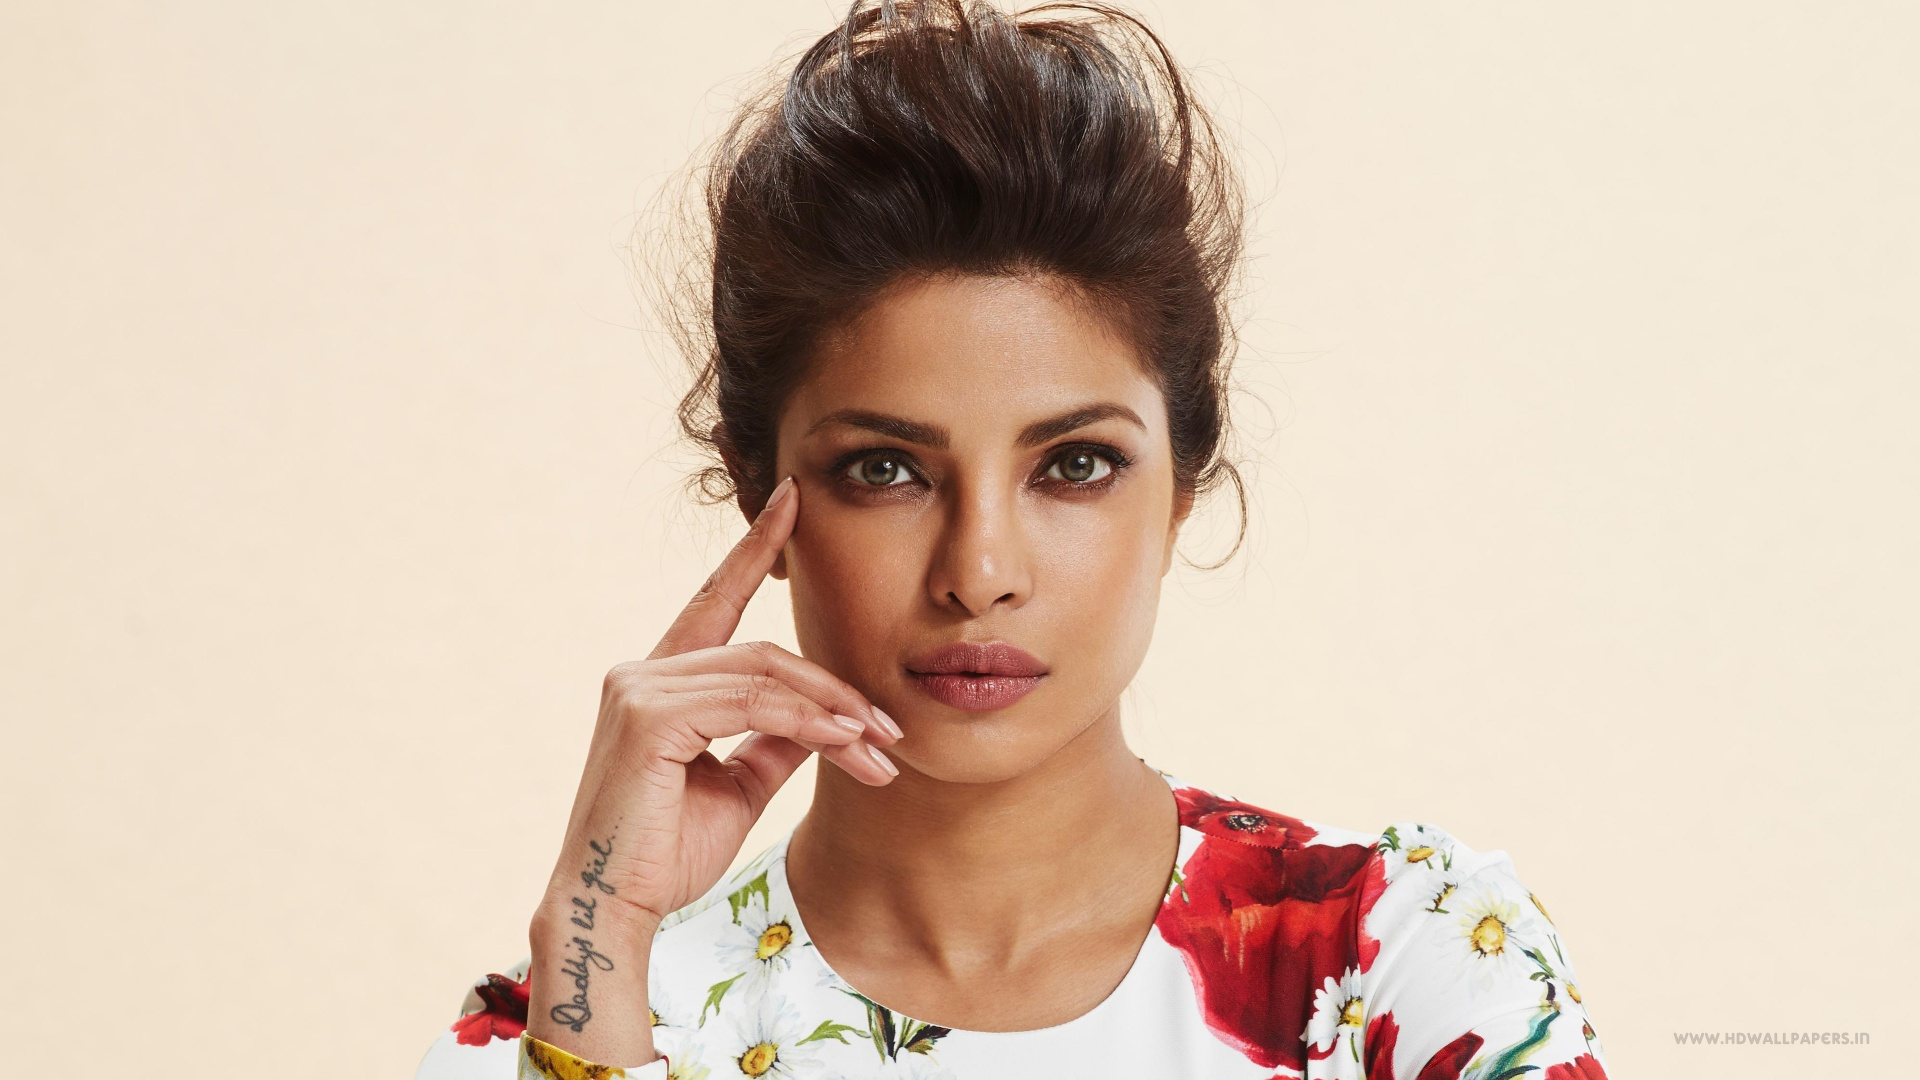 Indian Actresses images Priyanka Chopra HD wallpaper and ...